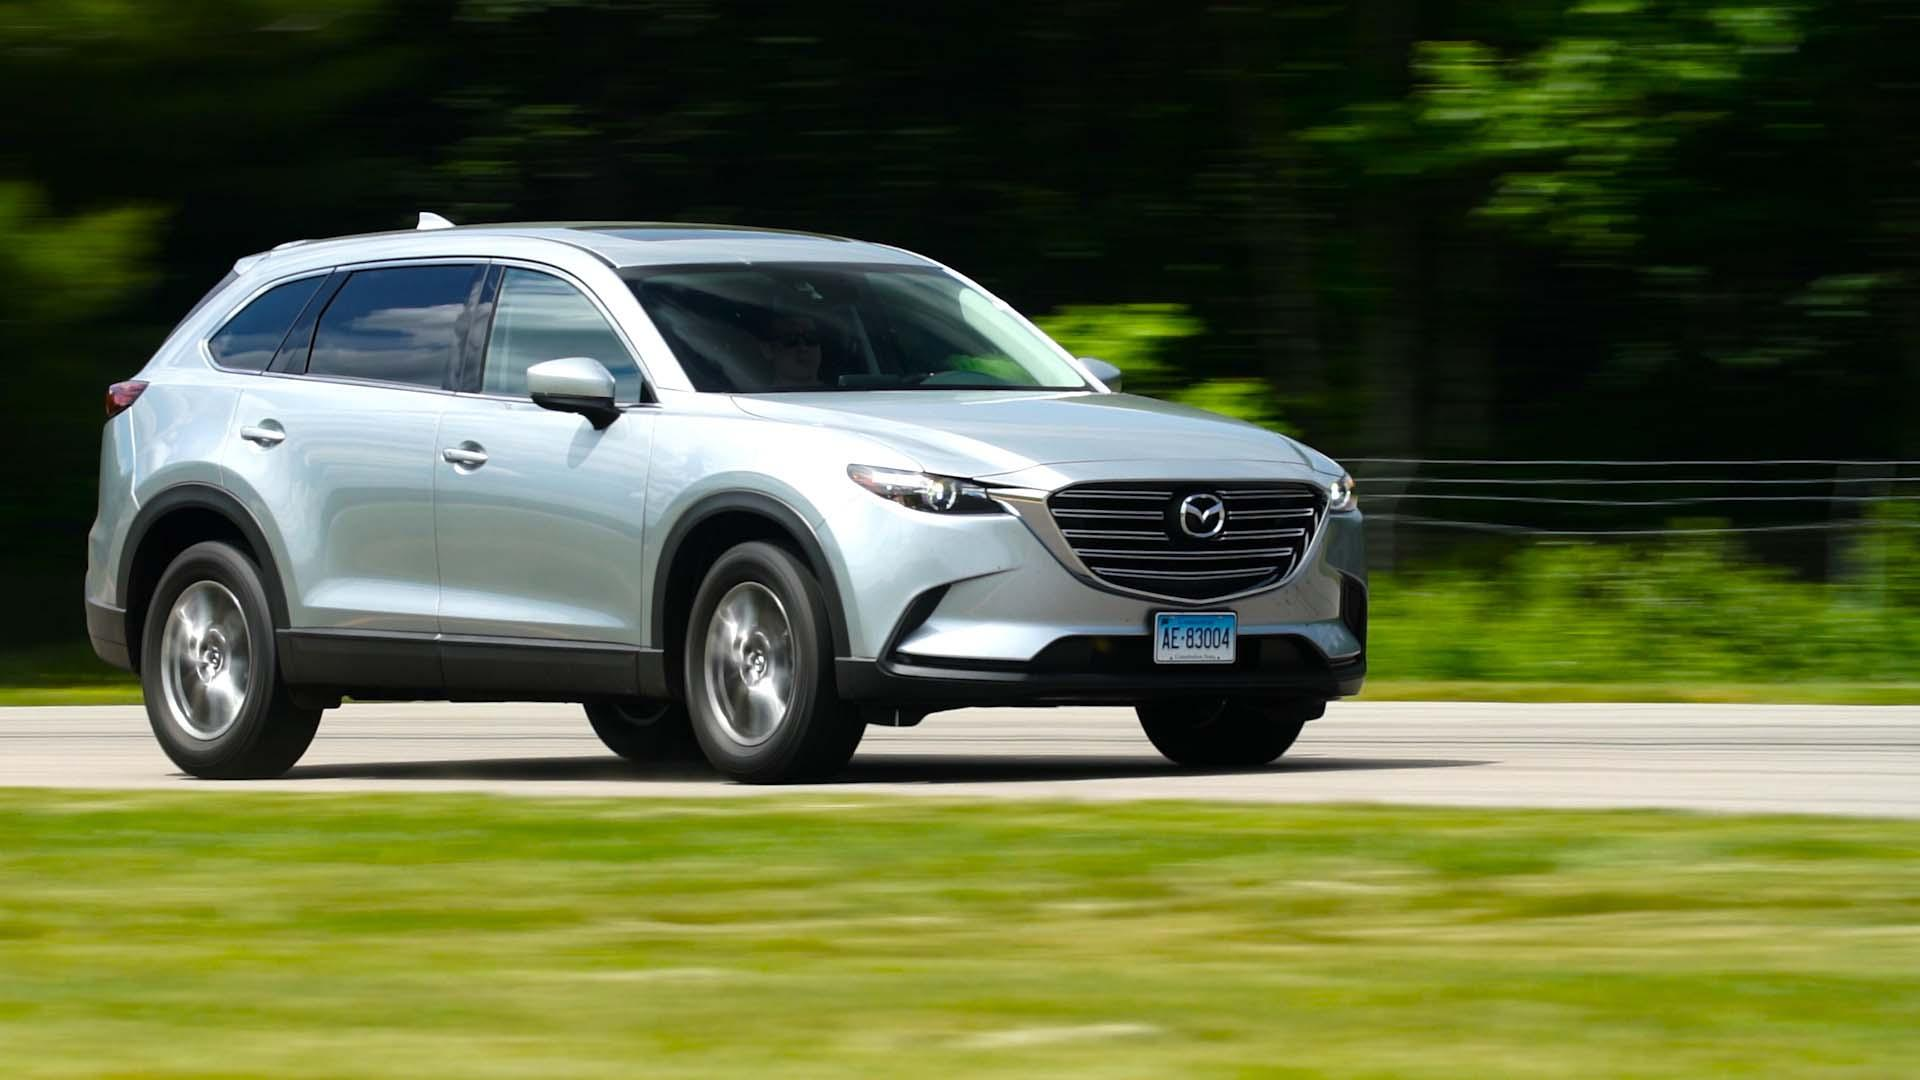 2016 mazda cx 9 reviews ratings prices consumer reports